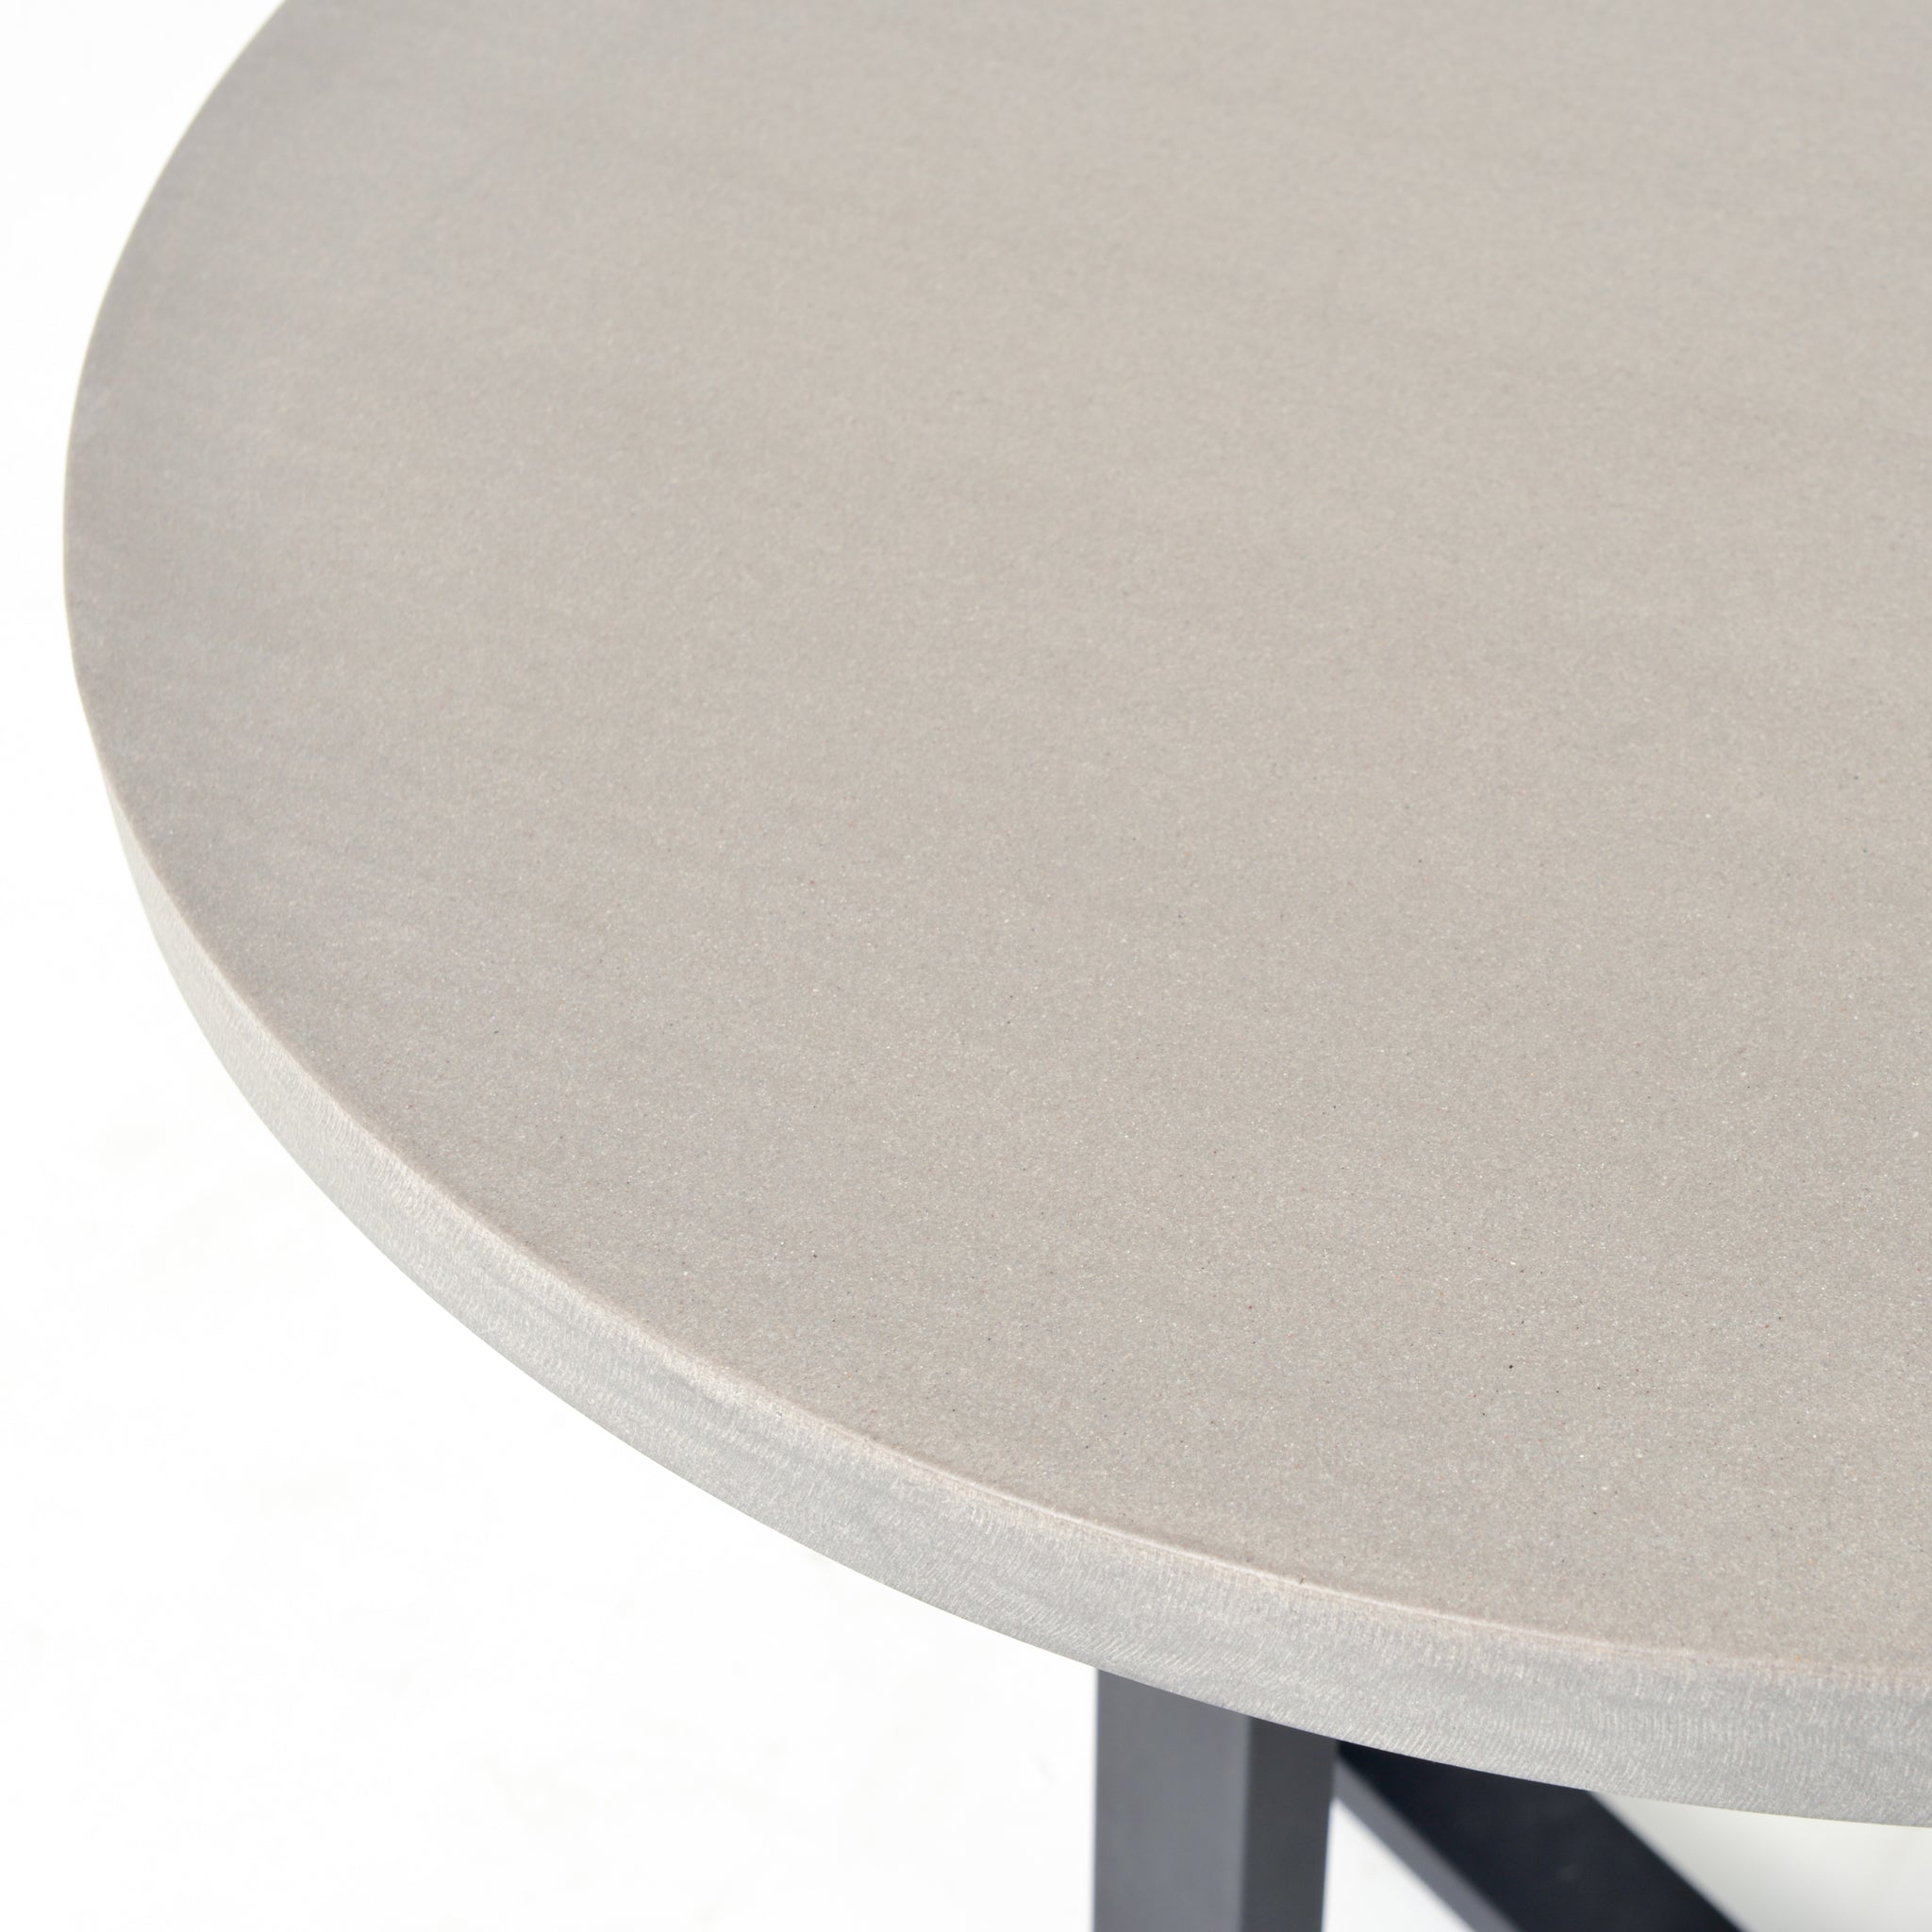 Small Cyrus Round Dining Table In Black Light Grey Burke Decor